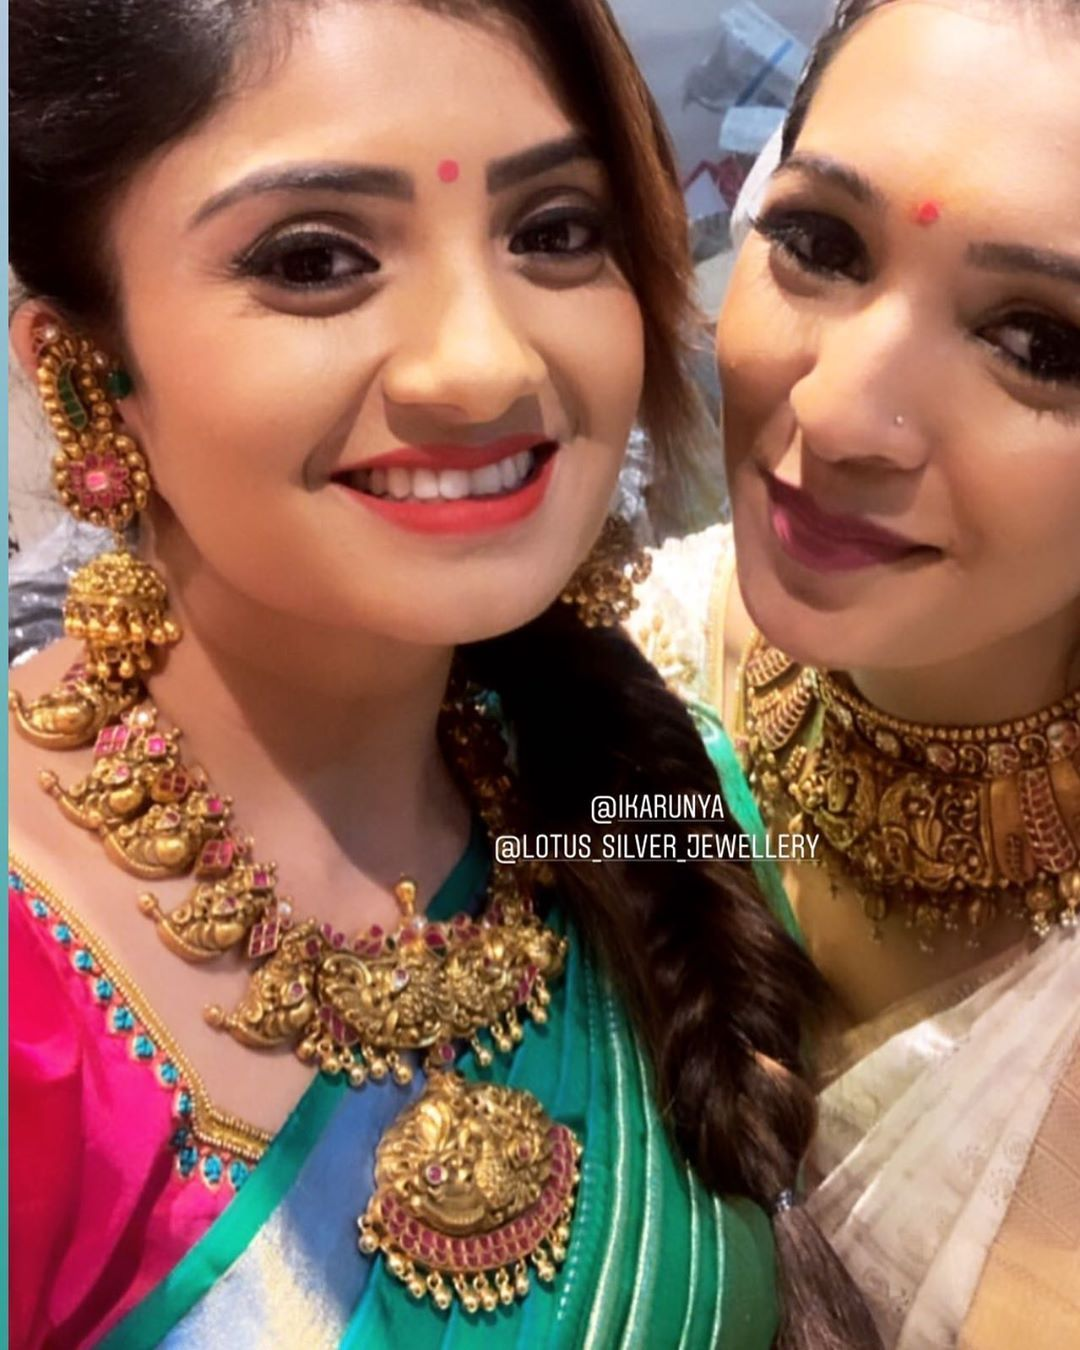 Lotus Silver Jewellery On Instagram Gorgeous Actress Ikarunya In Our Beau Bridal Jewelry Collection Gold Necklace Indian Bridal Jewelry Gold Jewelry Fashion